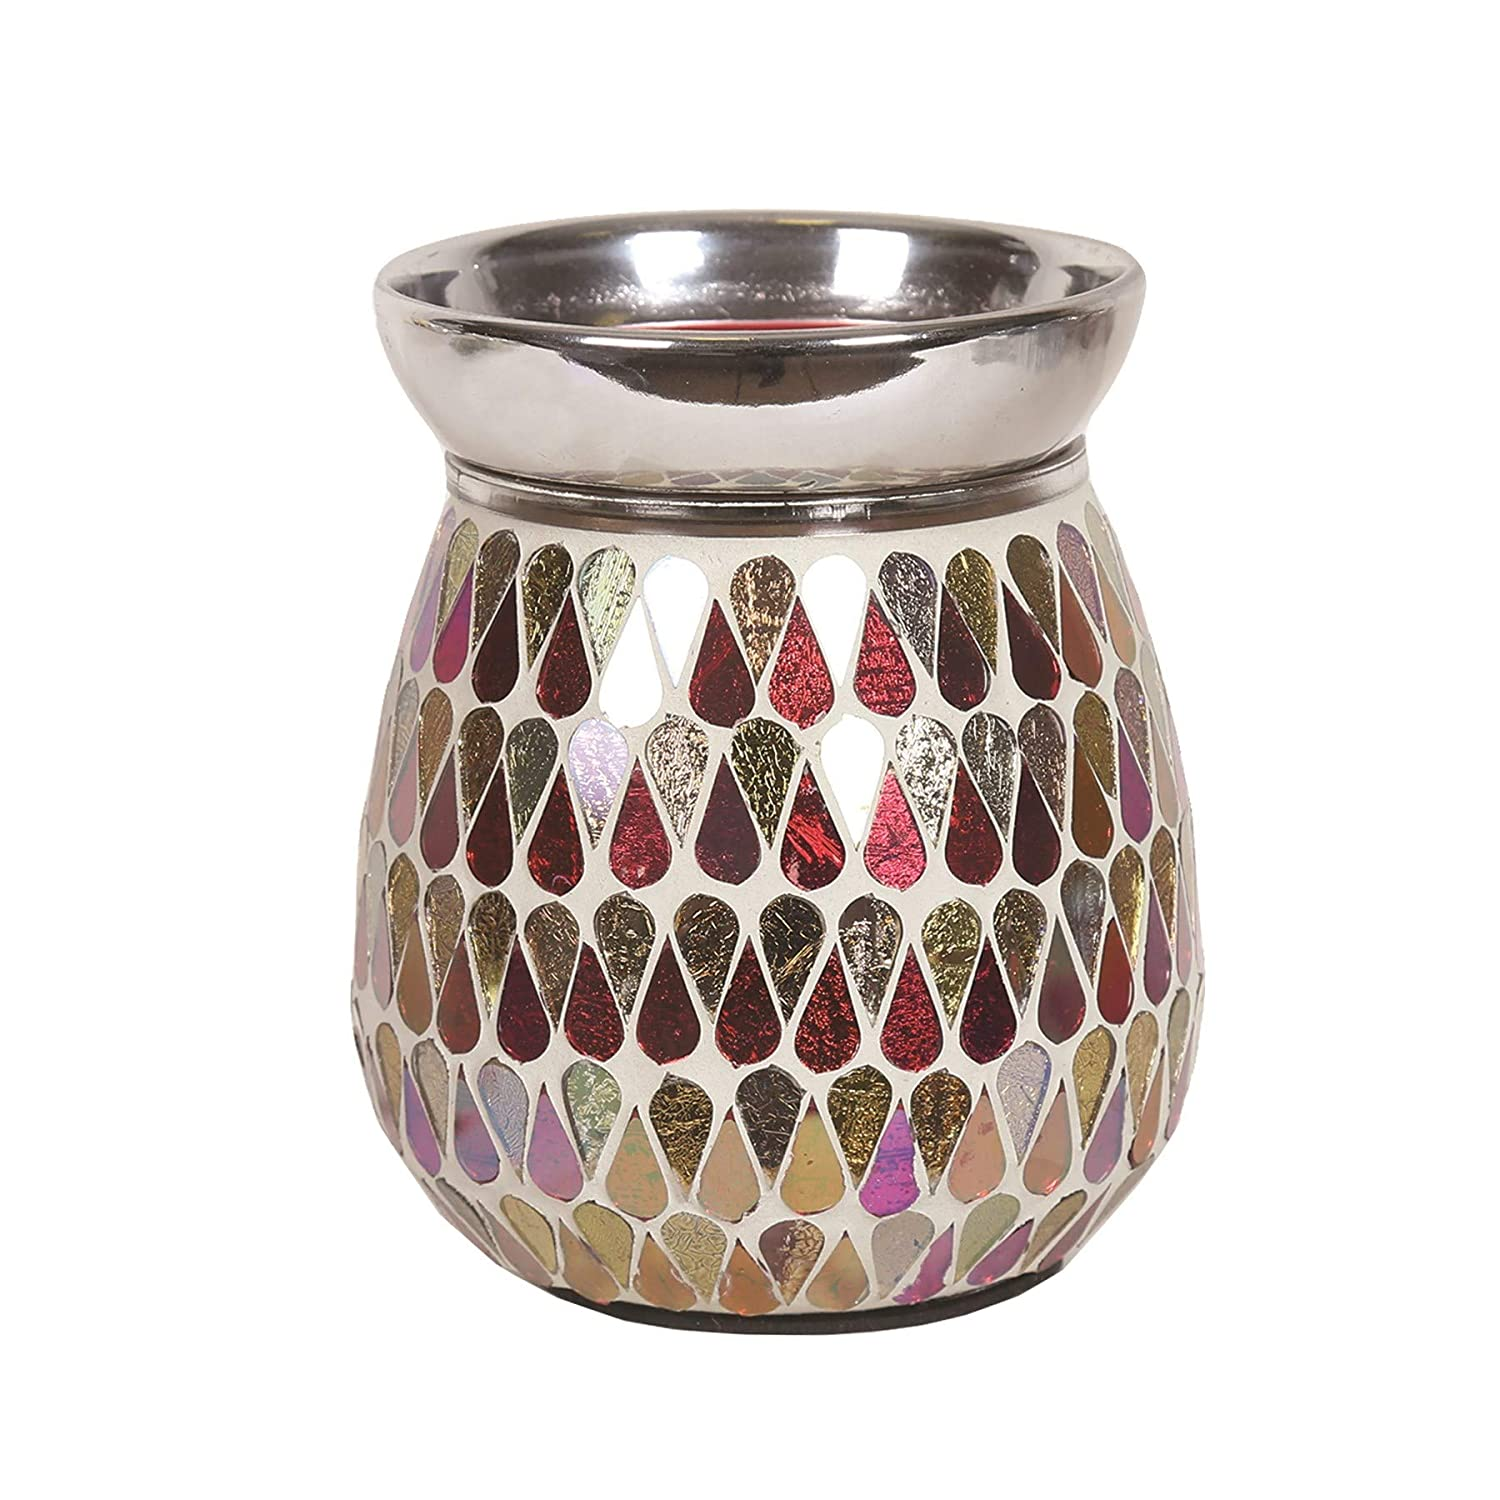 Electric Red Shimmer Wax Tart Melt Burner Lamp Hand Crafted Aroma Warmer Astin of London - Aroma Accessories